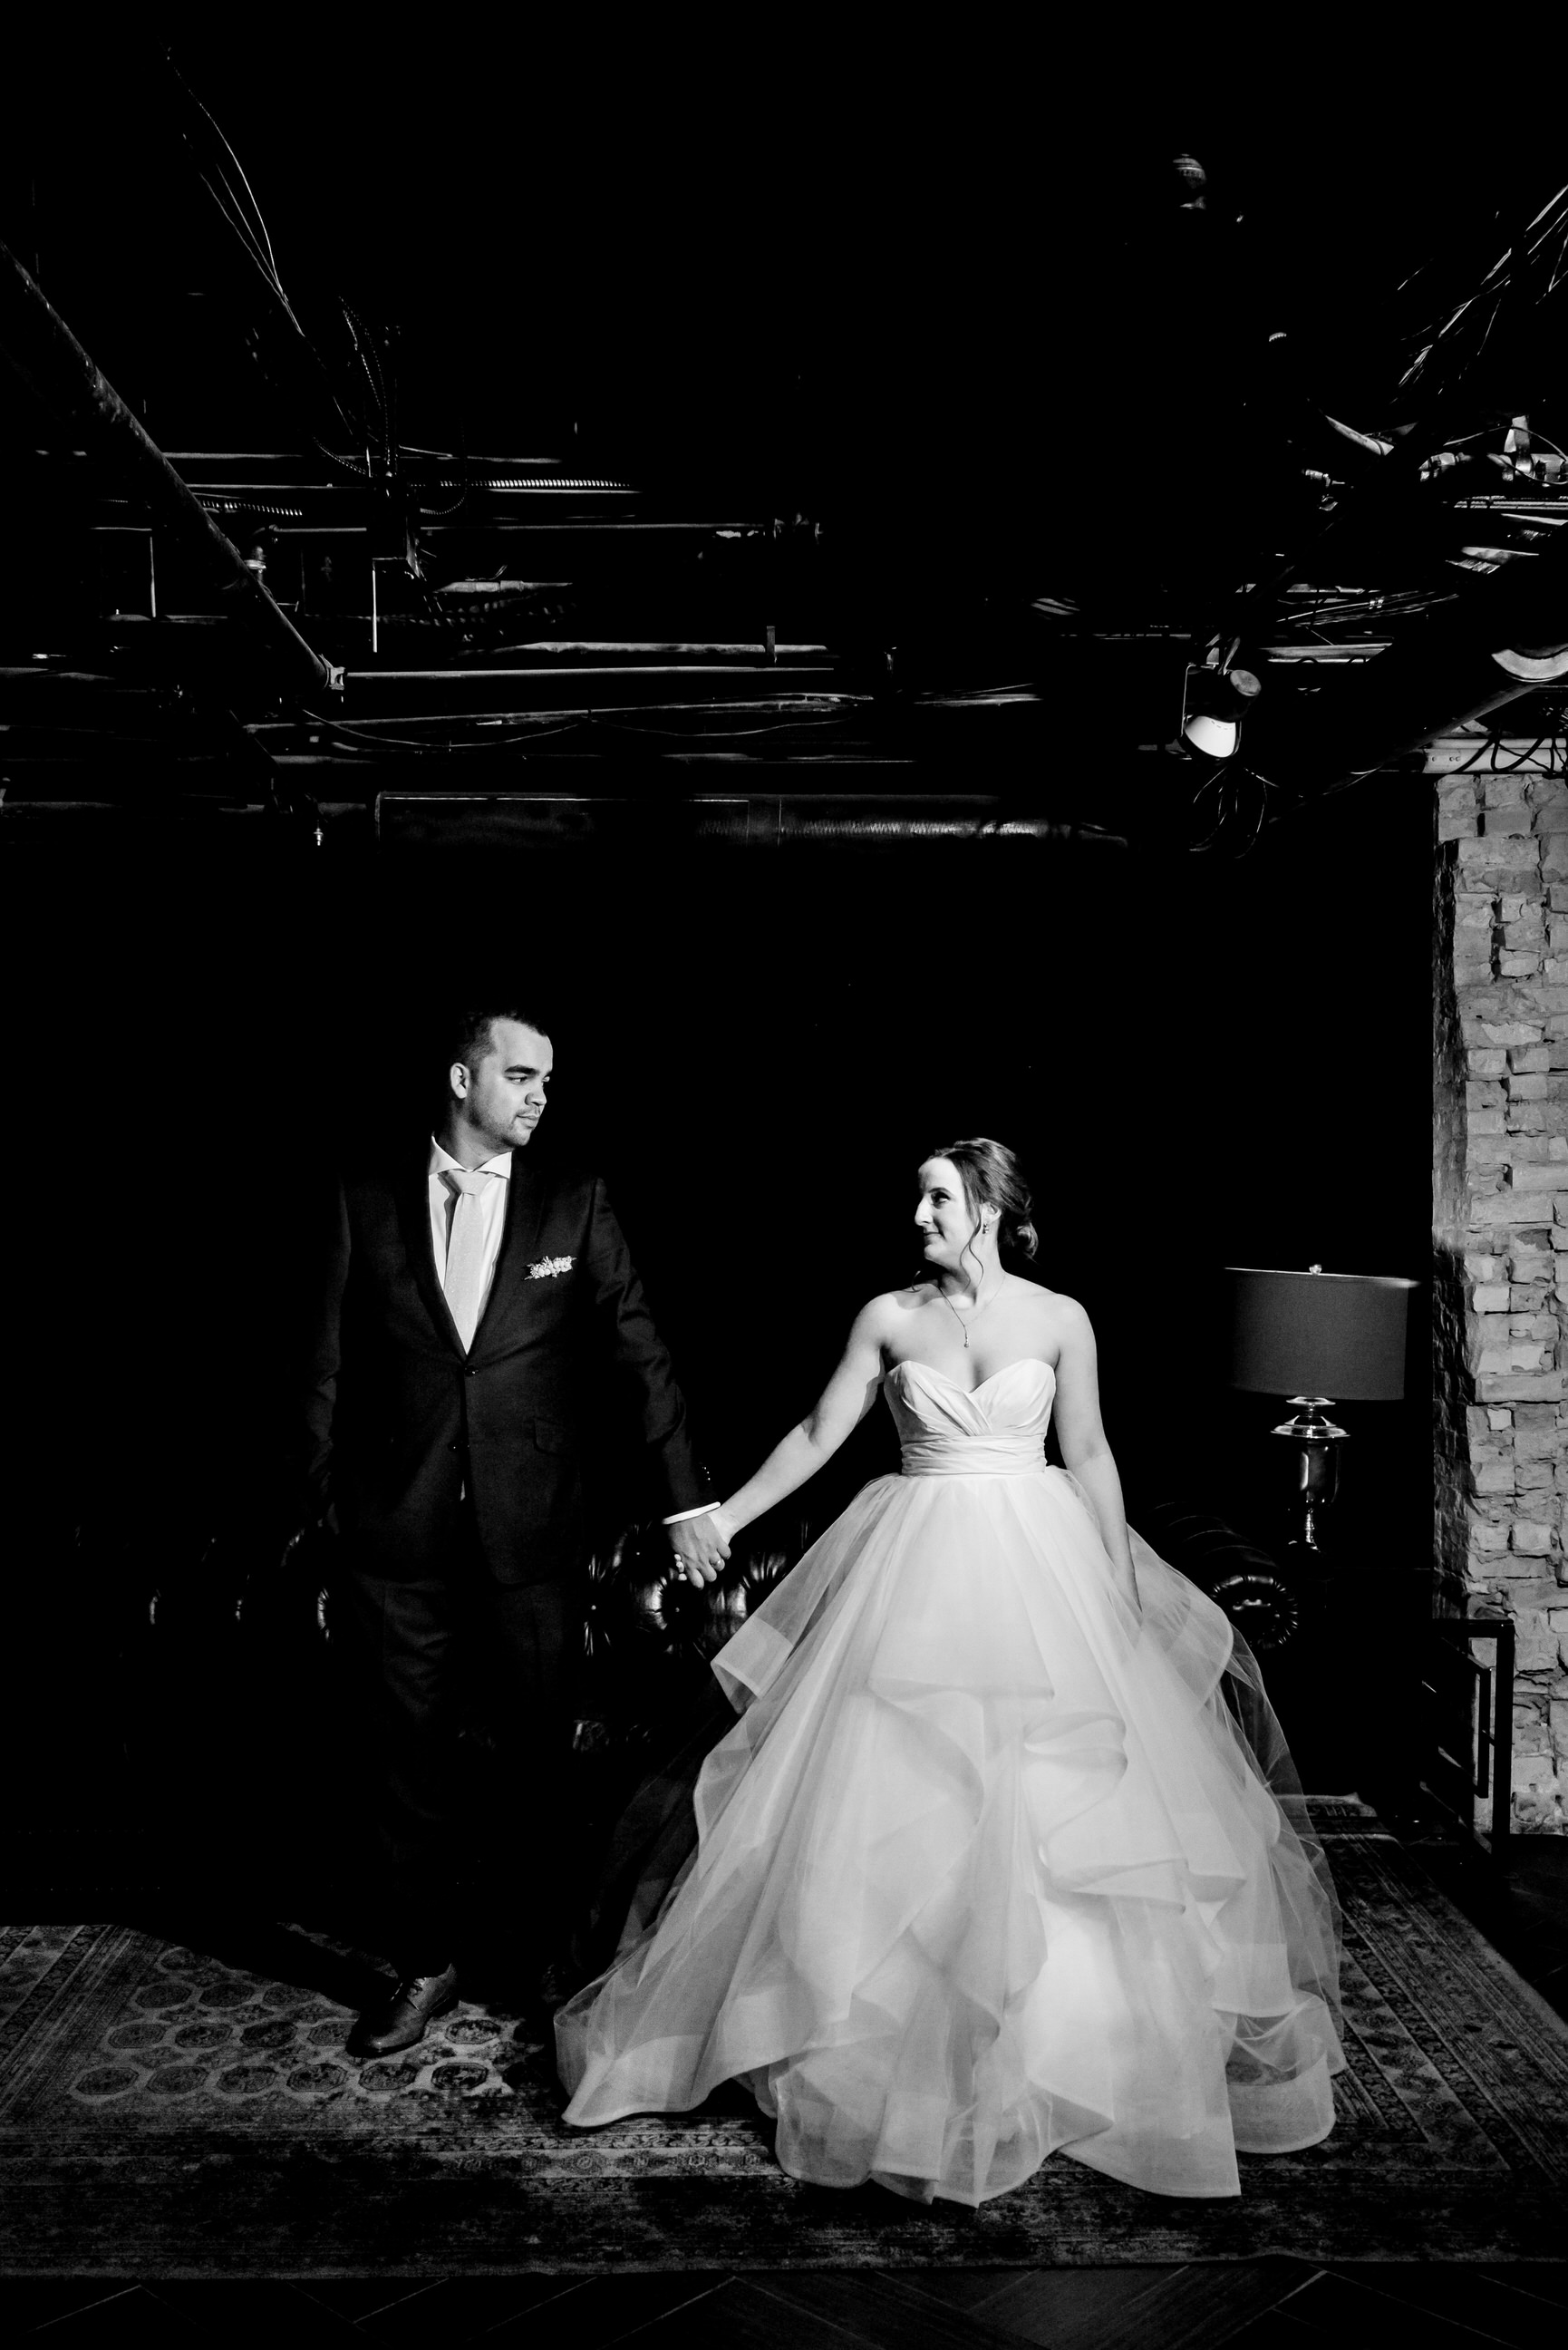 Megan and Alec - Lumber Exchange Wedding Sawyer Dylan Room - Highlights BW-111.jpg